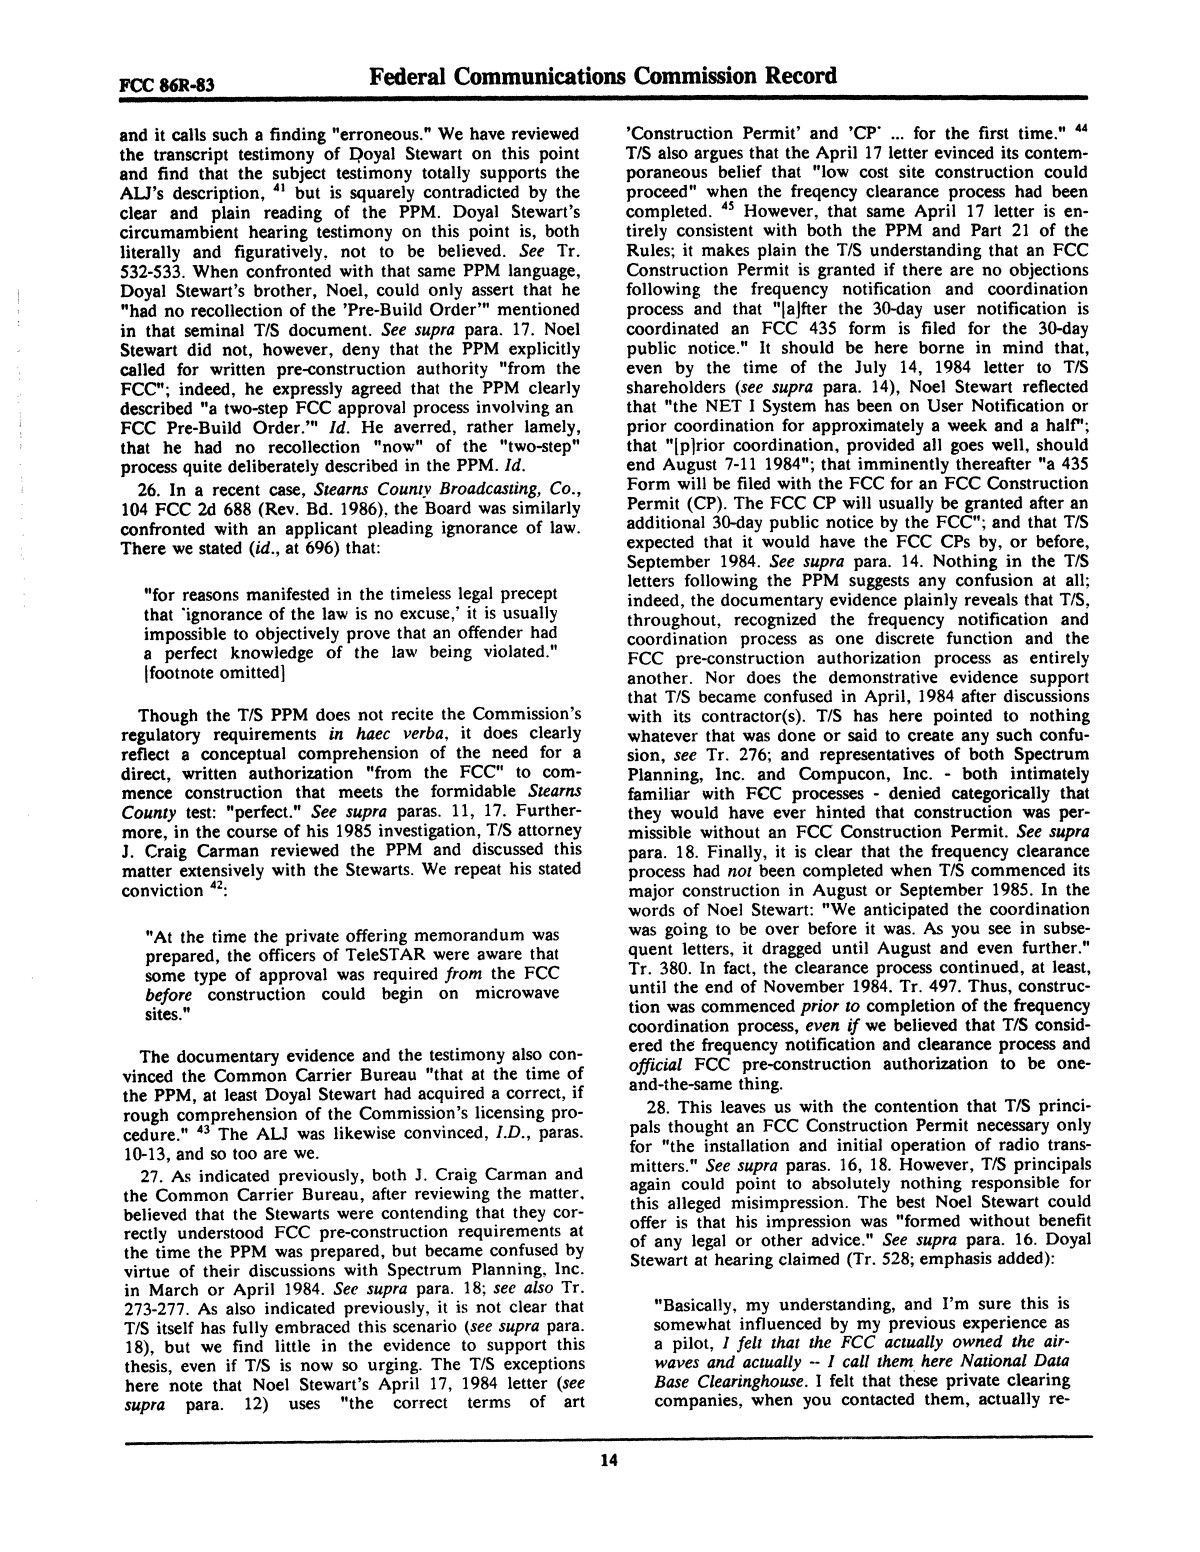 FCC Record, Volume 2, No. 1, Pages 1 to 409, January 5 - January 16, 1987                                                                                                      14